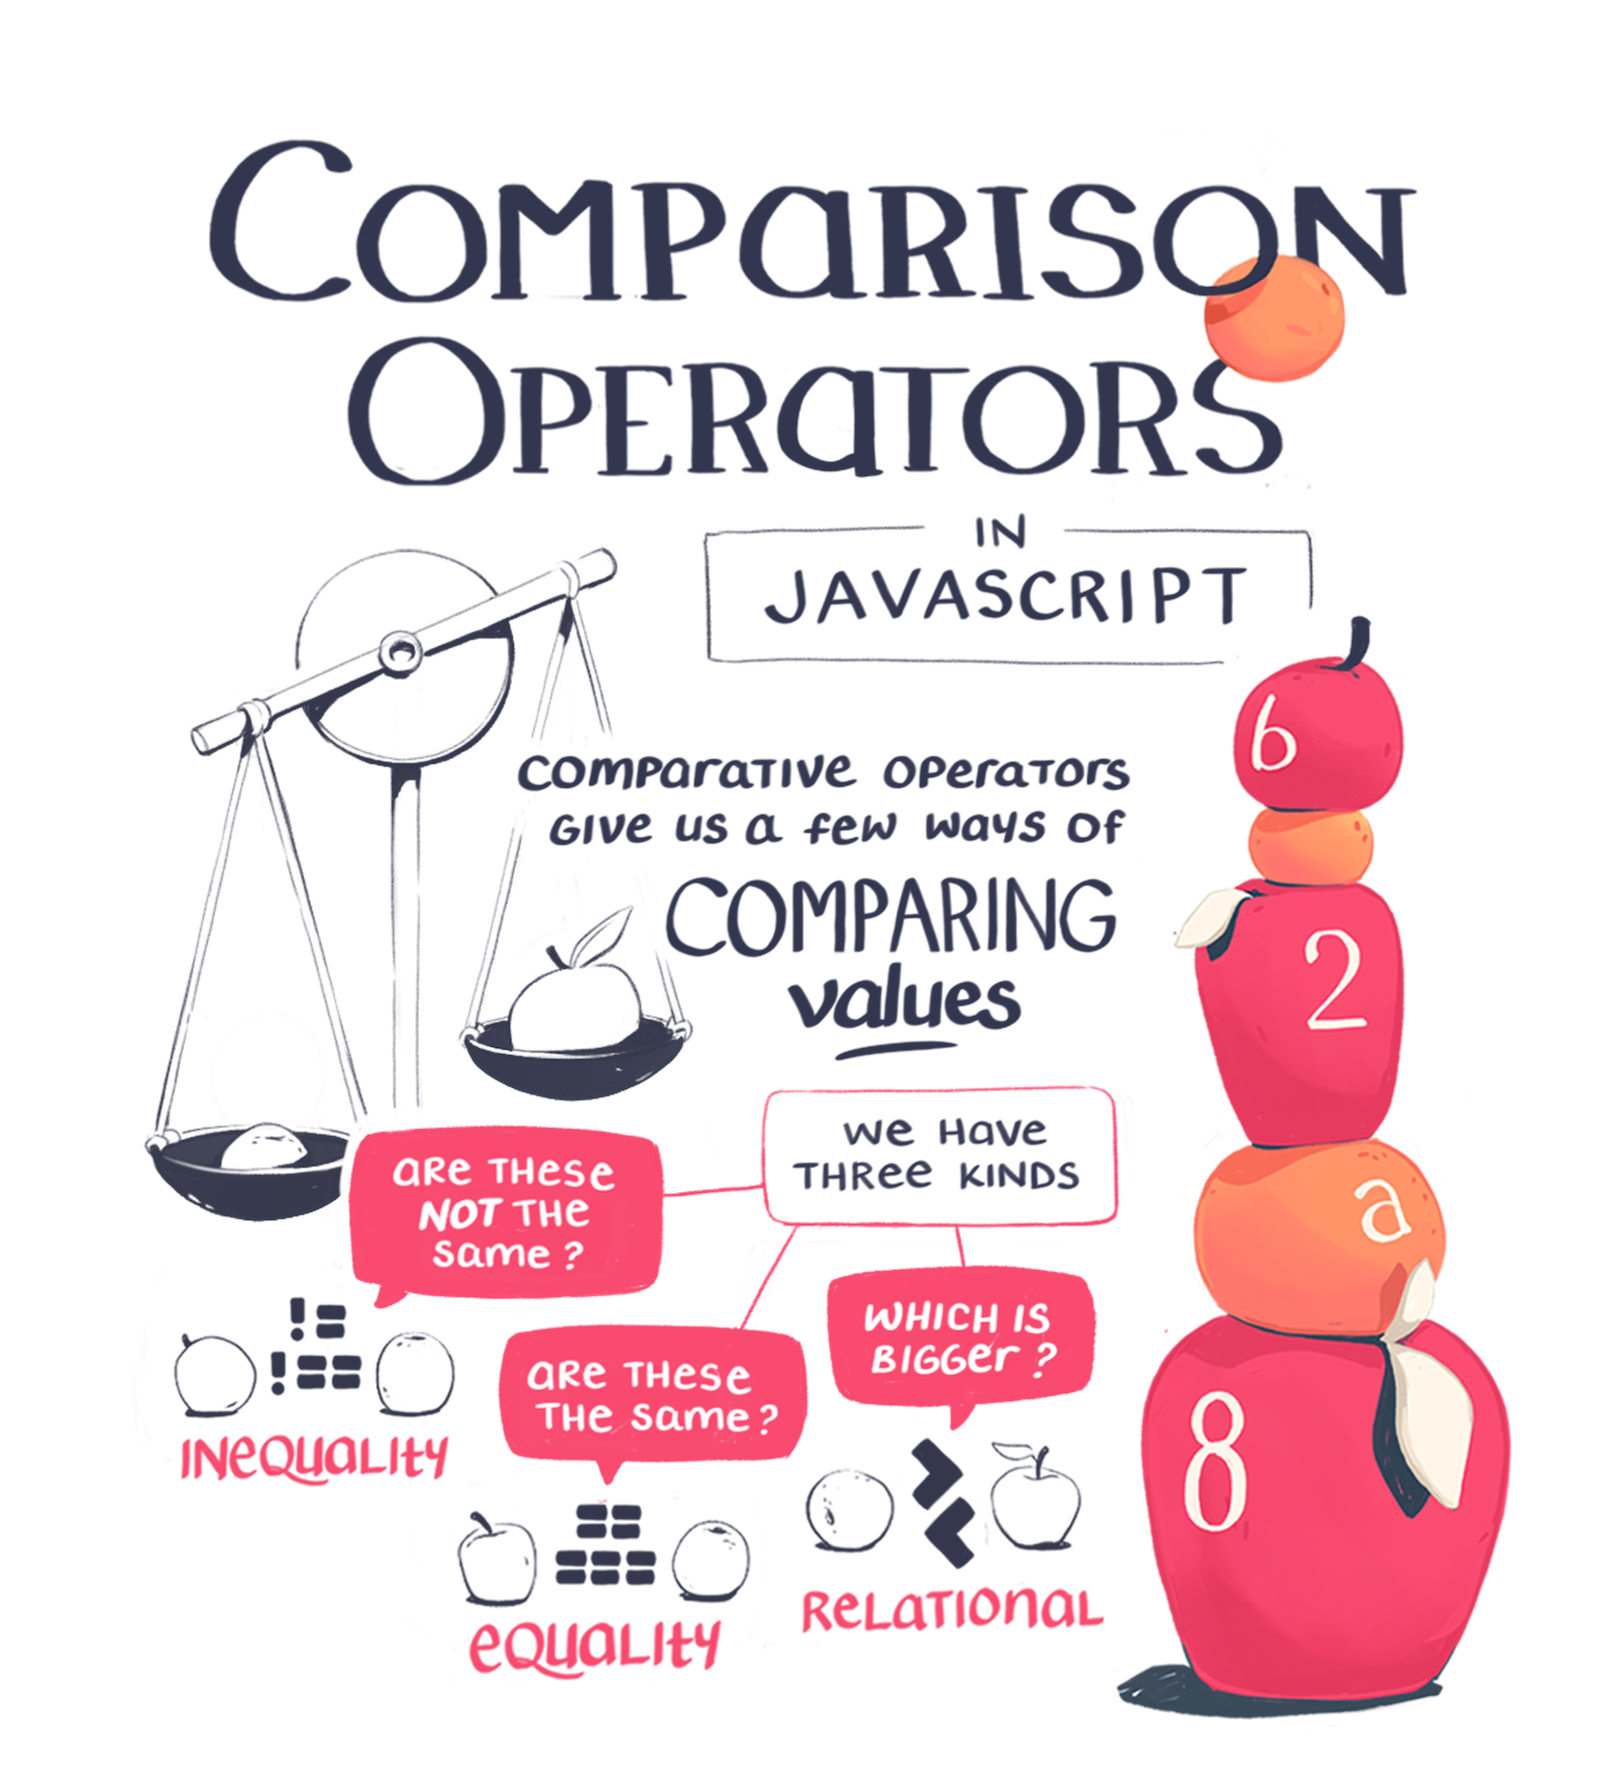 Javascript's comparison operators give us a way of comparing values